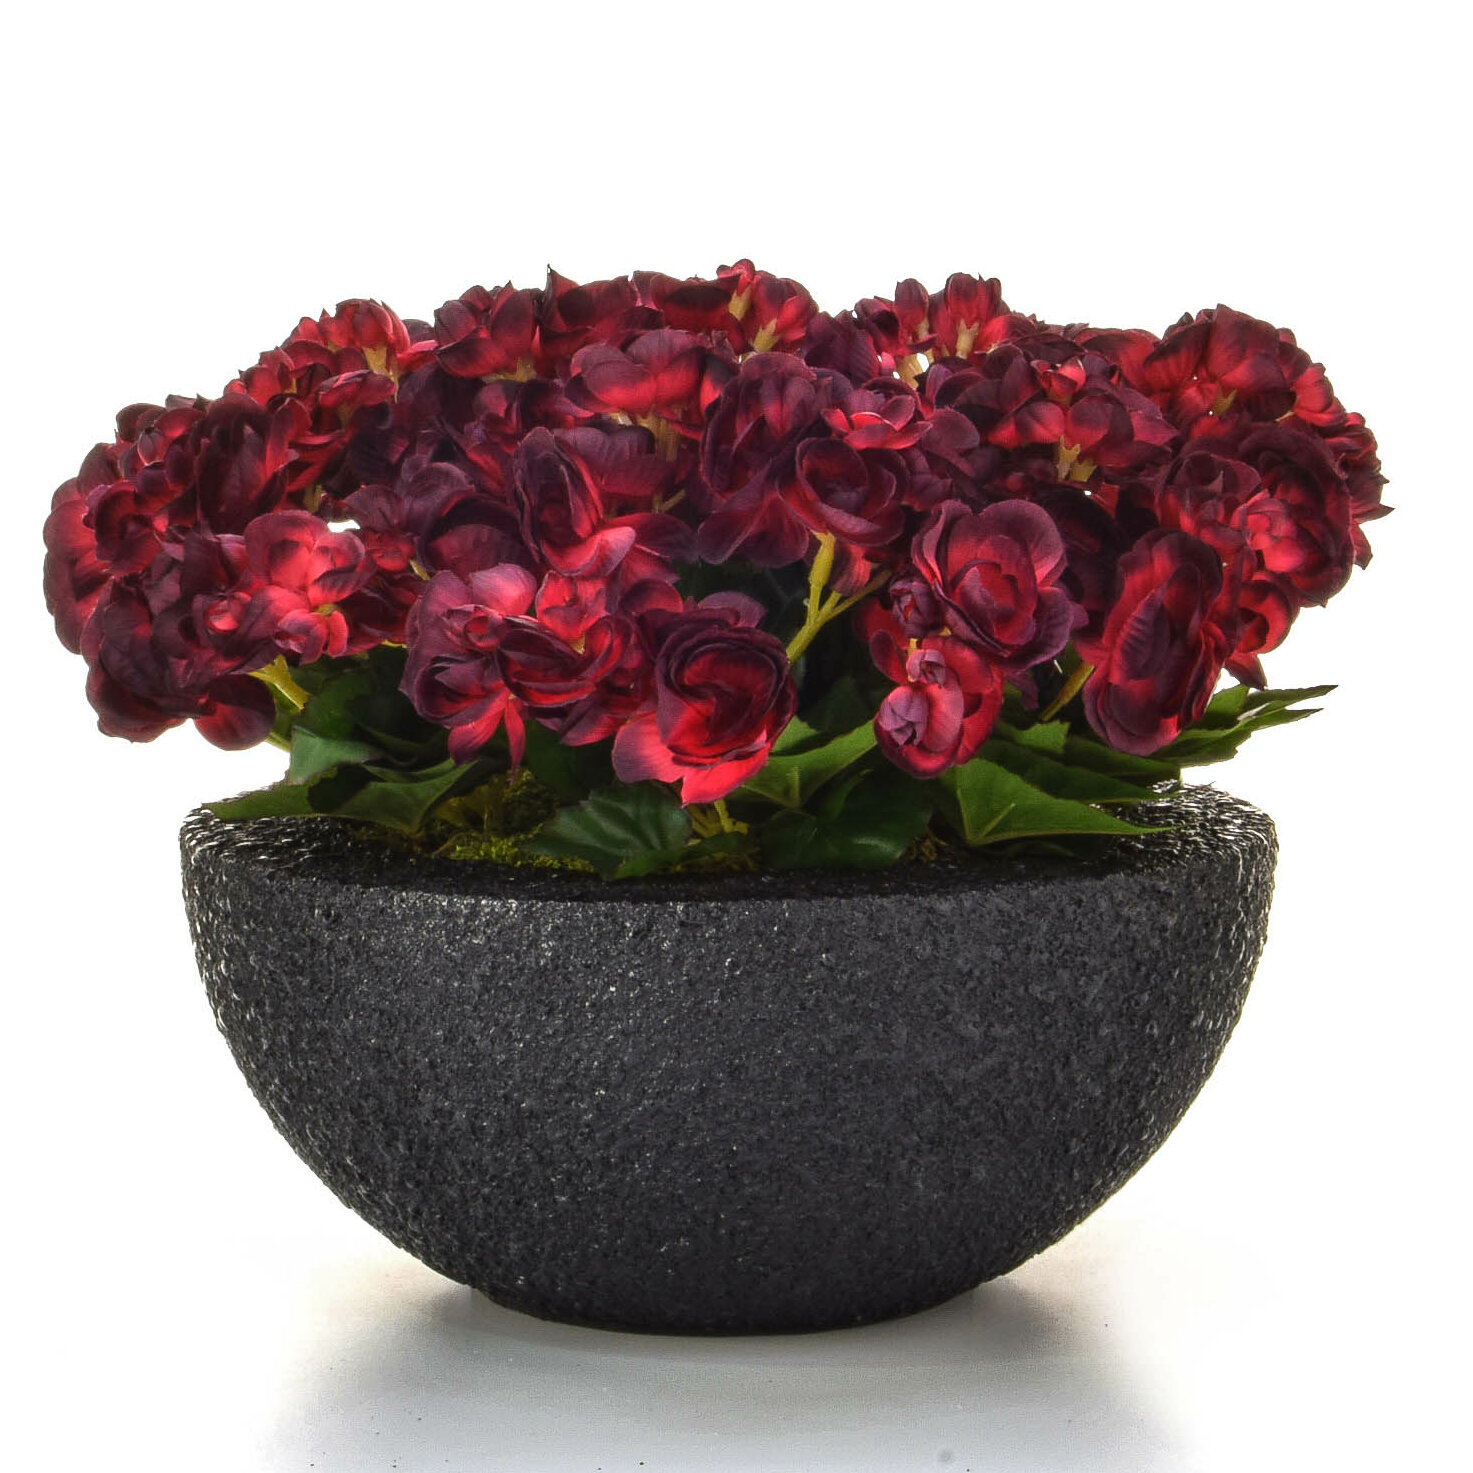 Artificial Begonia Floral Arrangements in Moscow Pot